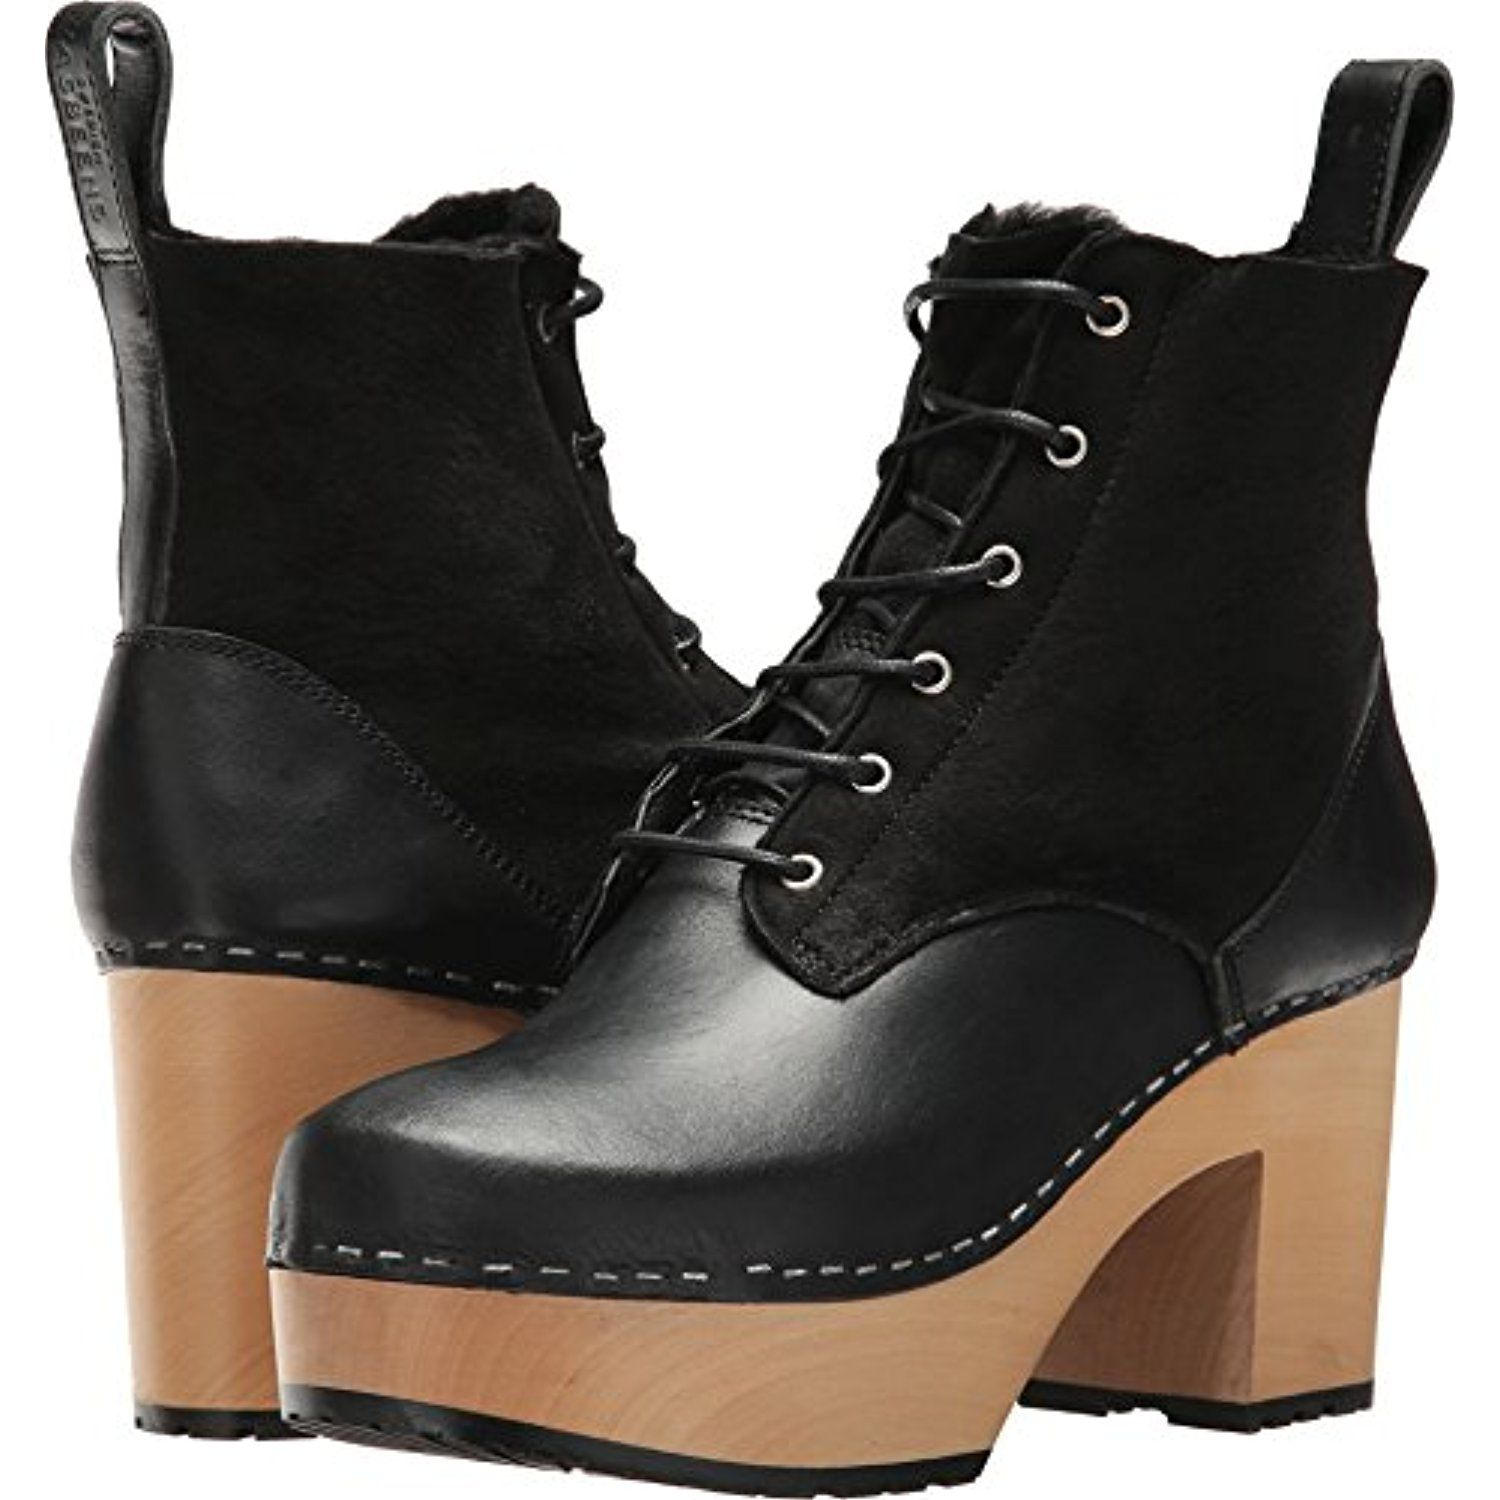 Women's Hippie Lace up Ankle Boot